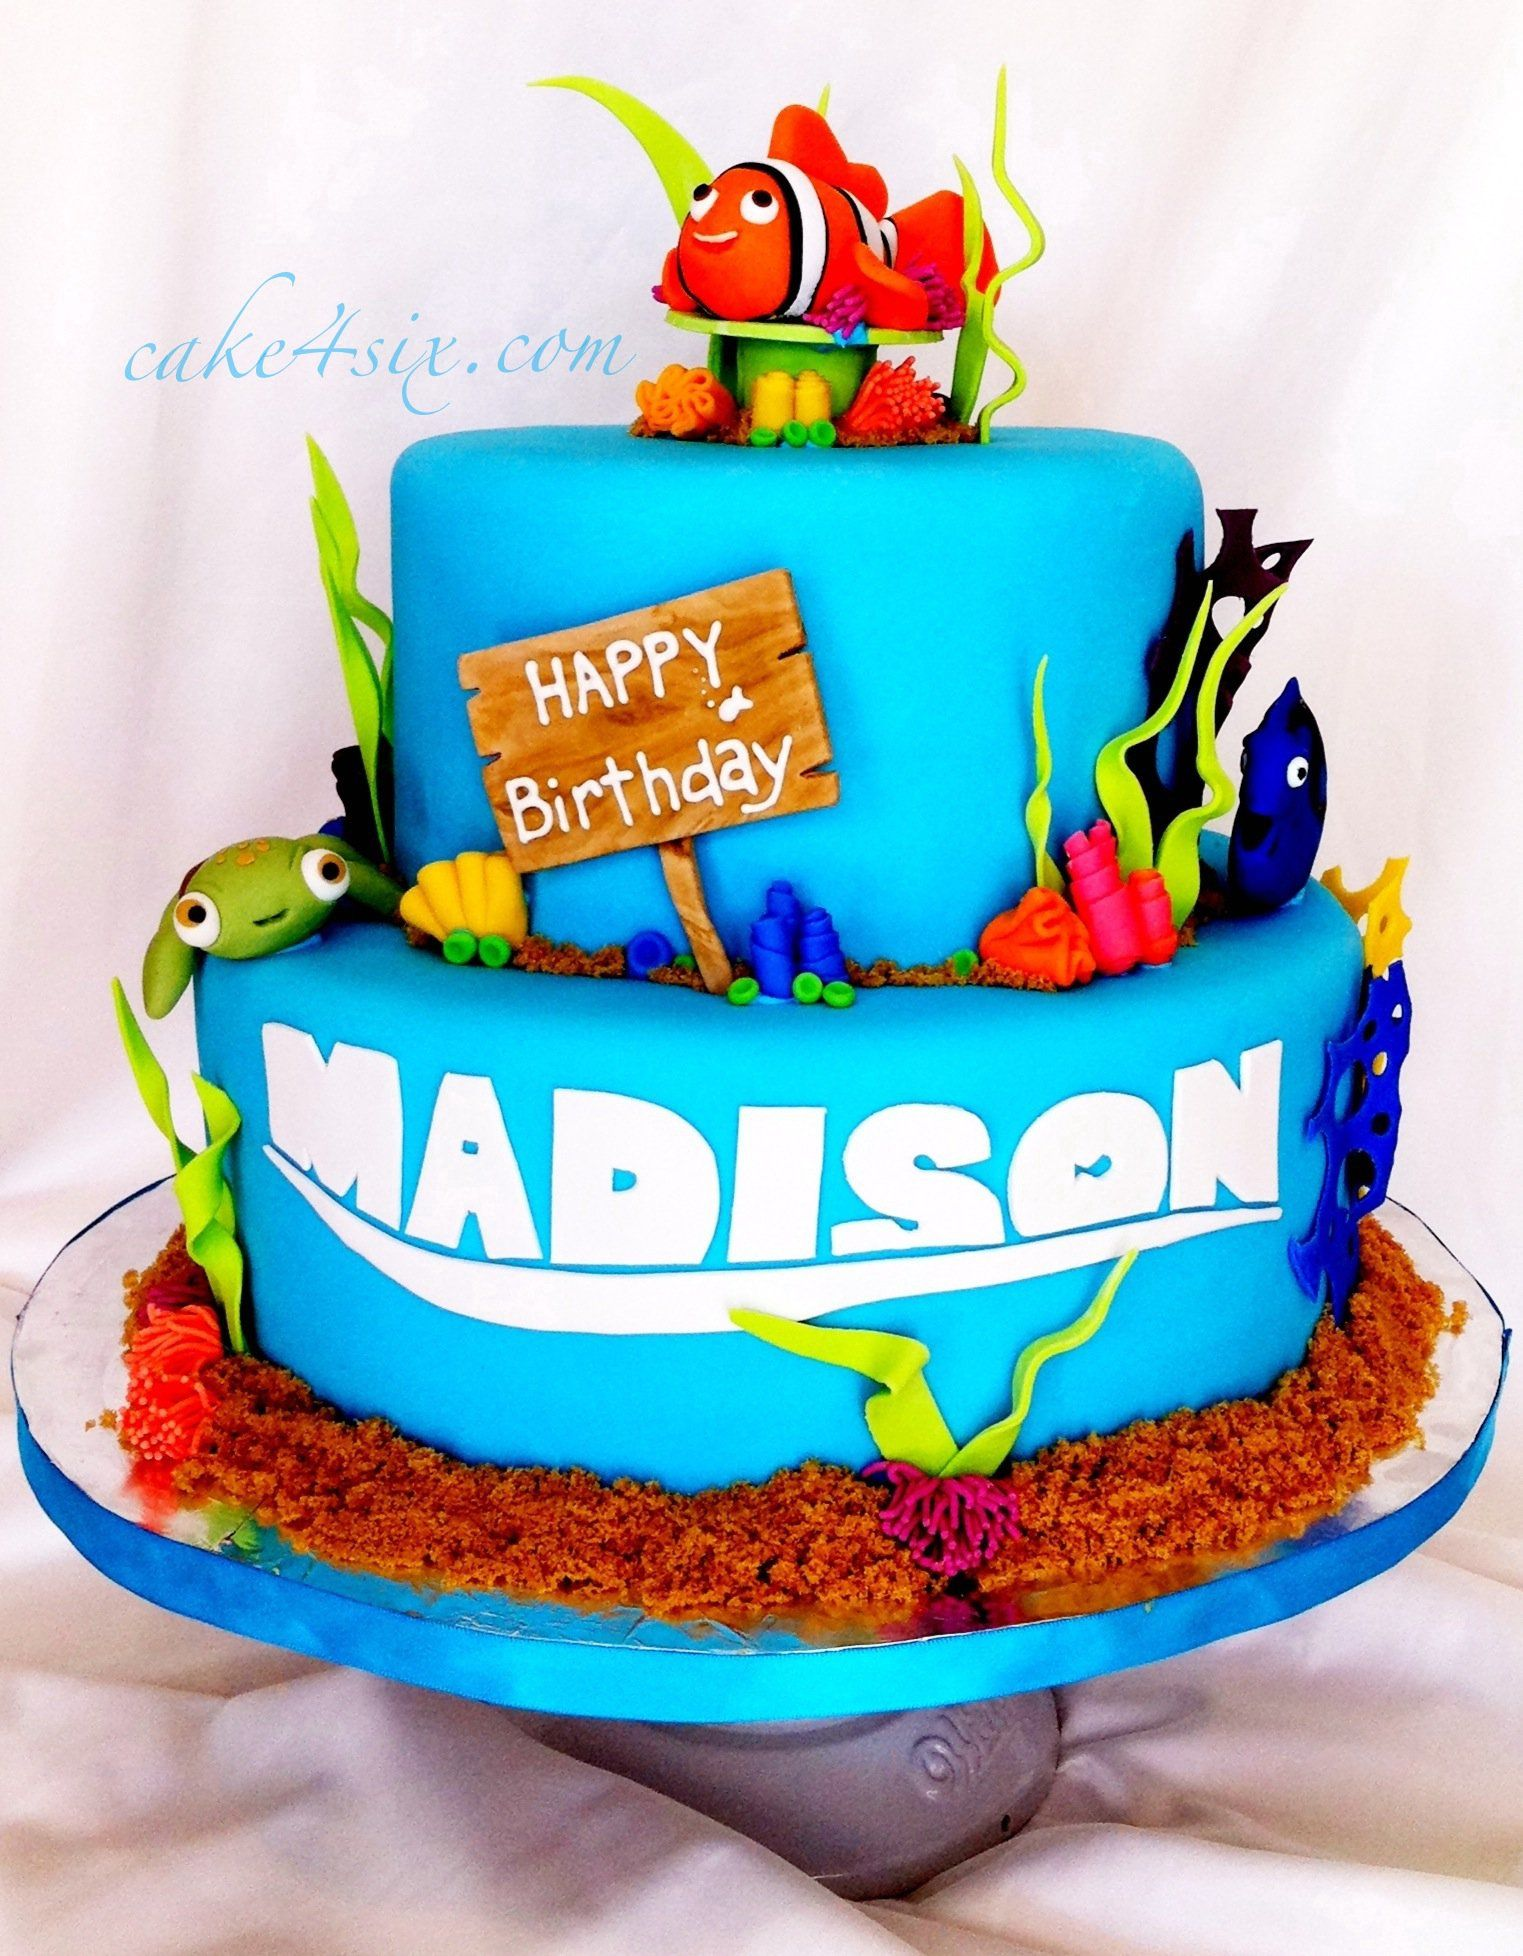 my kids will like finding nemo so i can make this cake or have